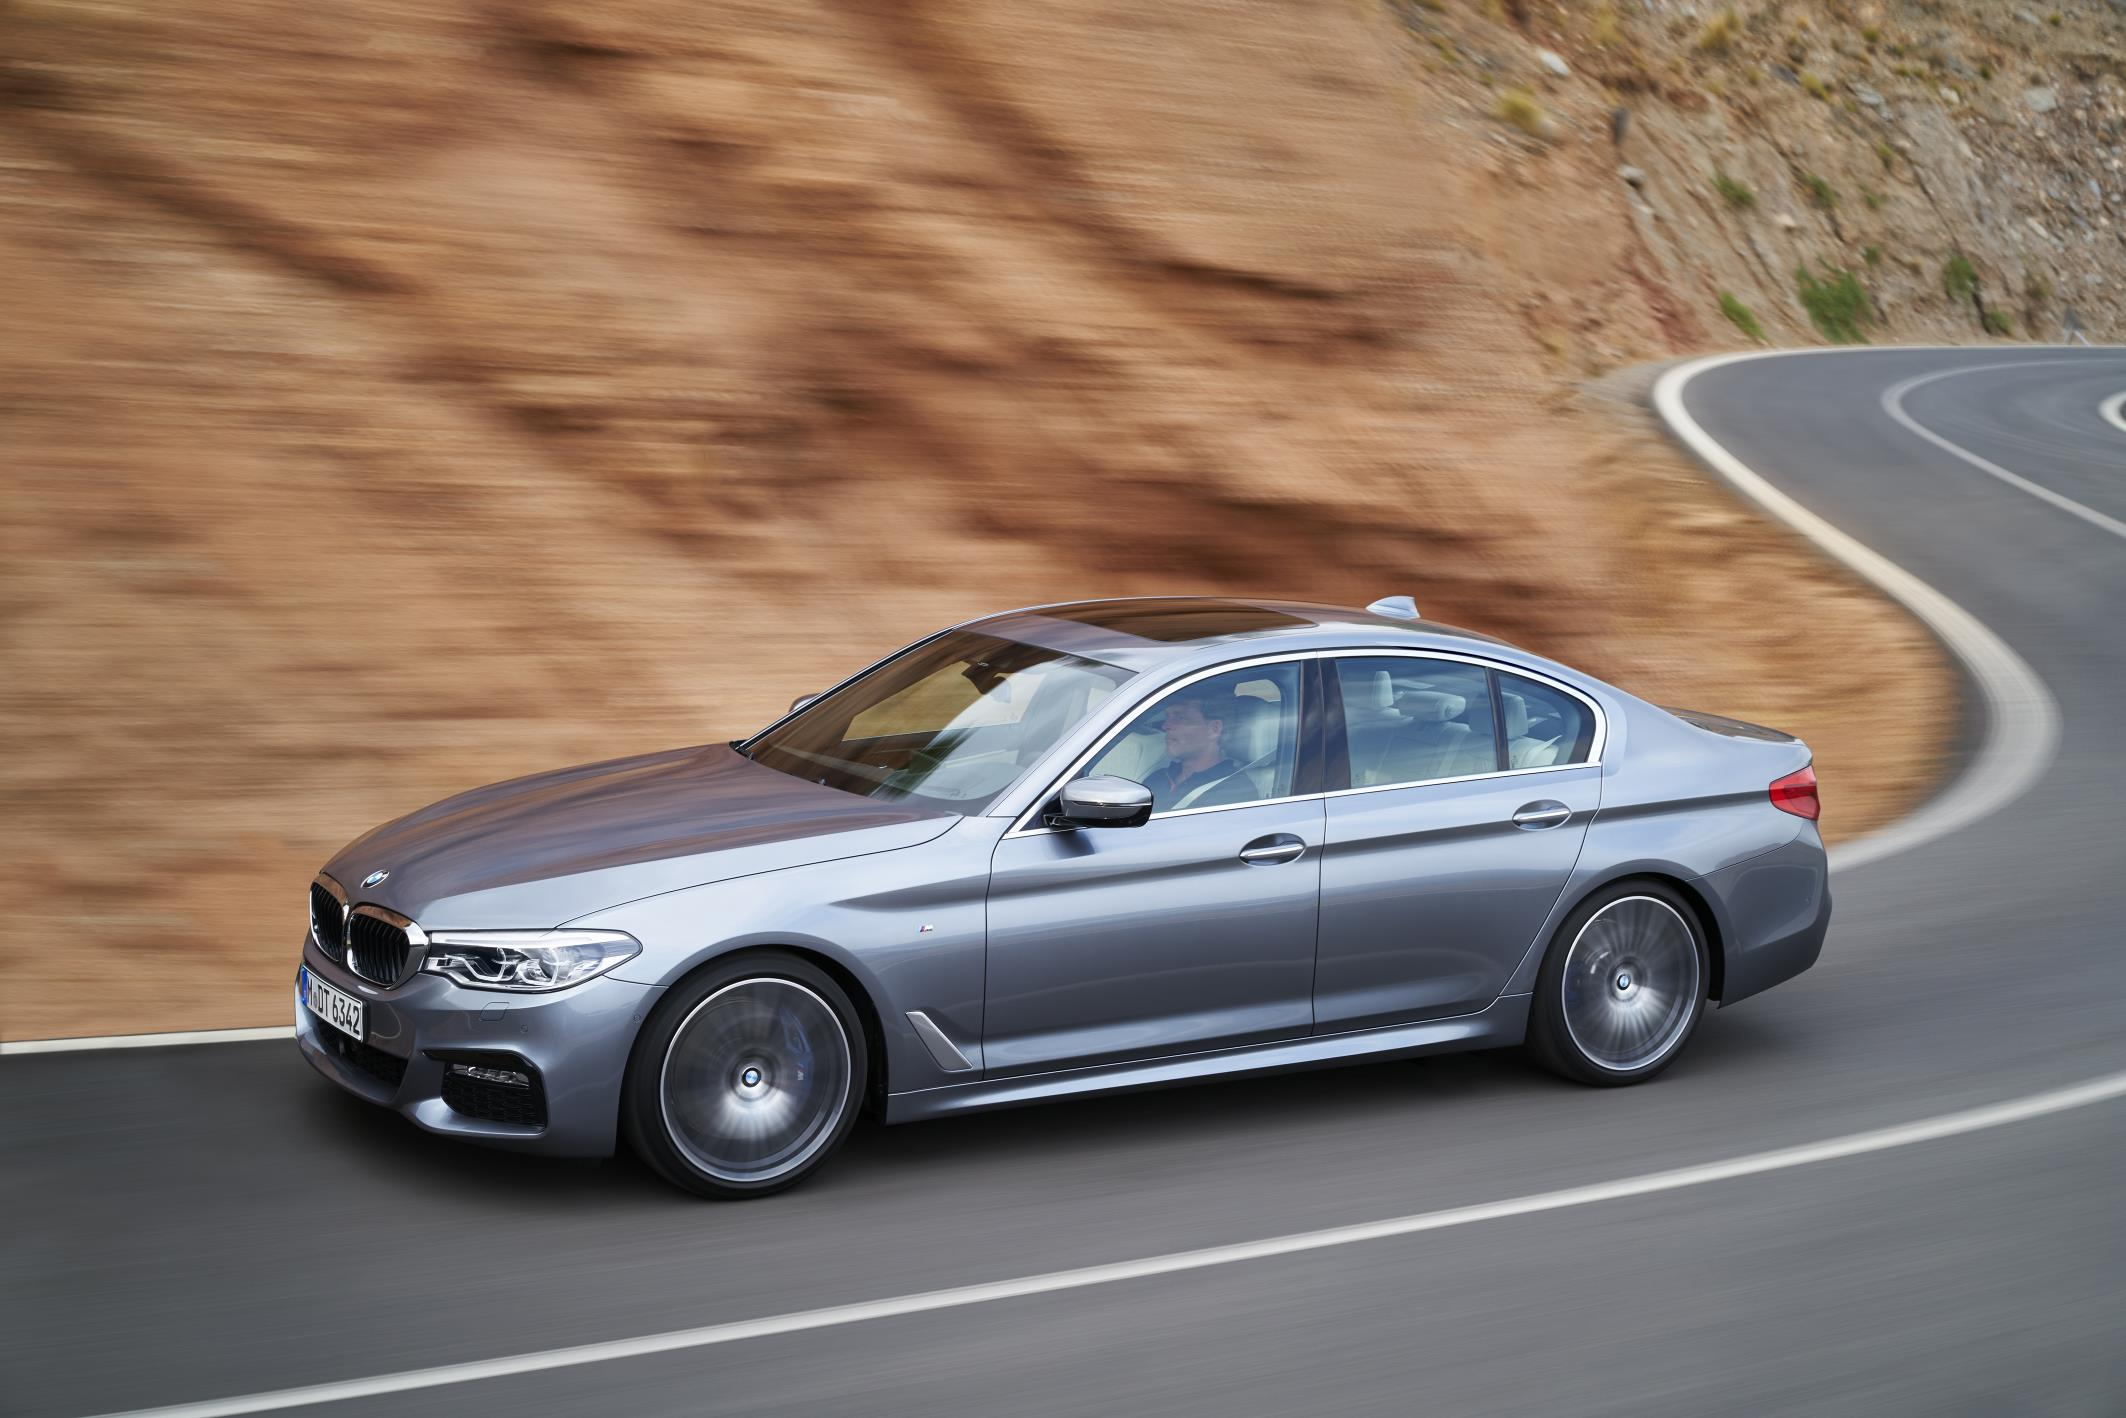 Bmw Announces Pricing For All New 5 Series 530i Starts At 51200